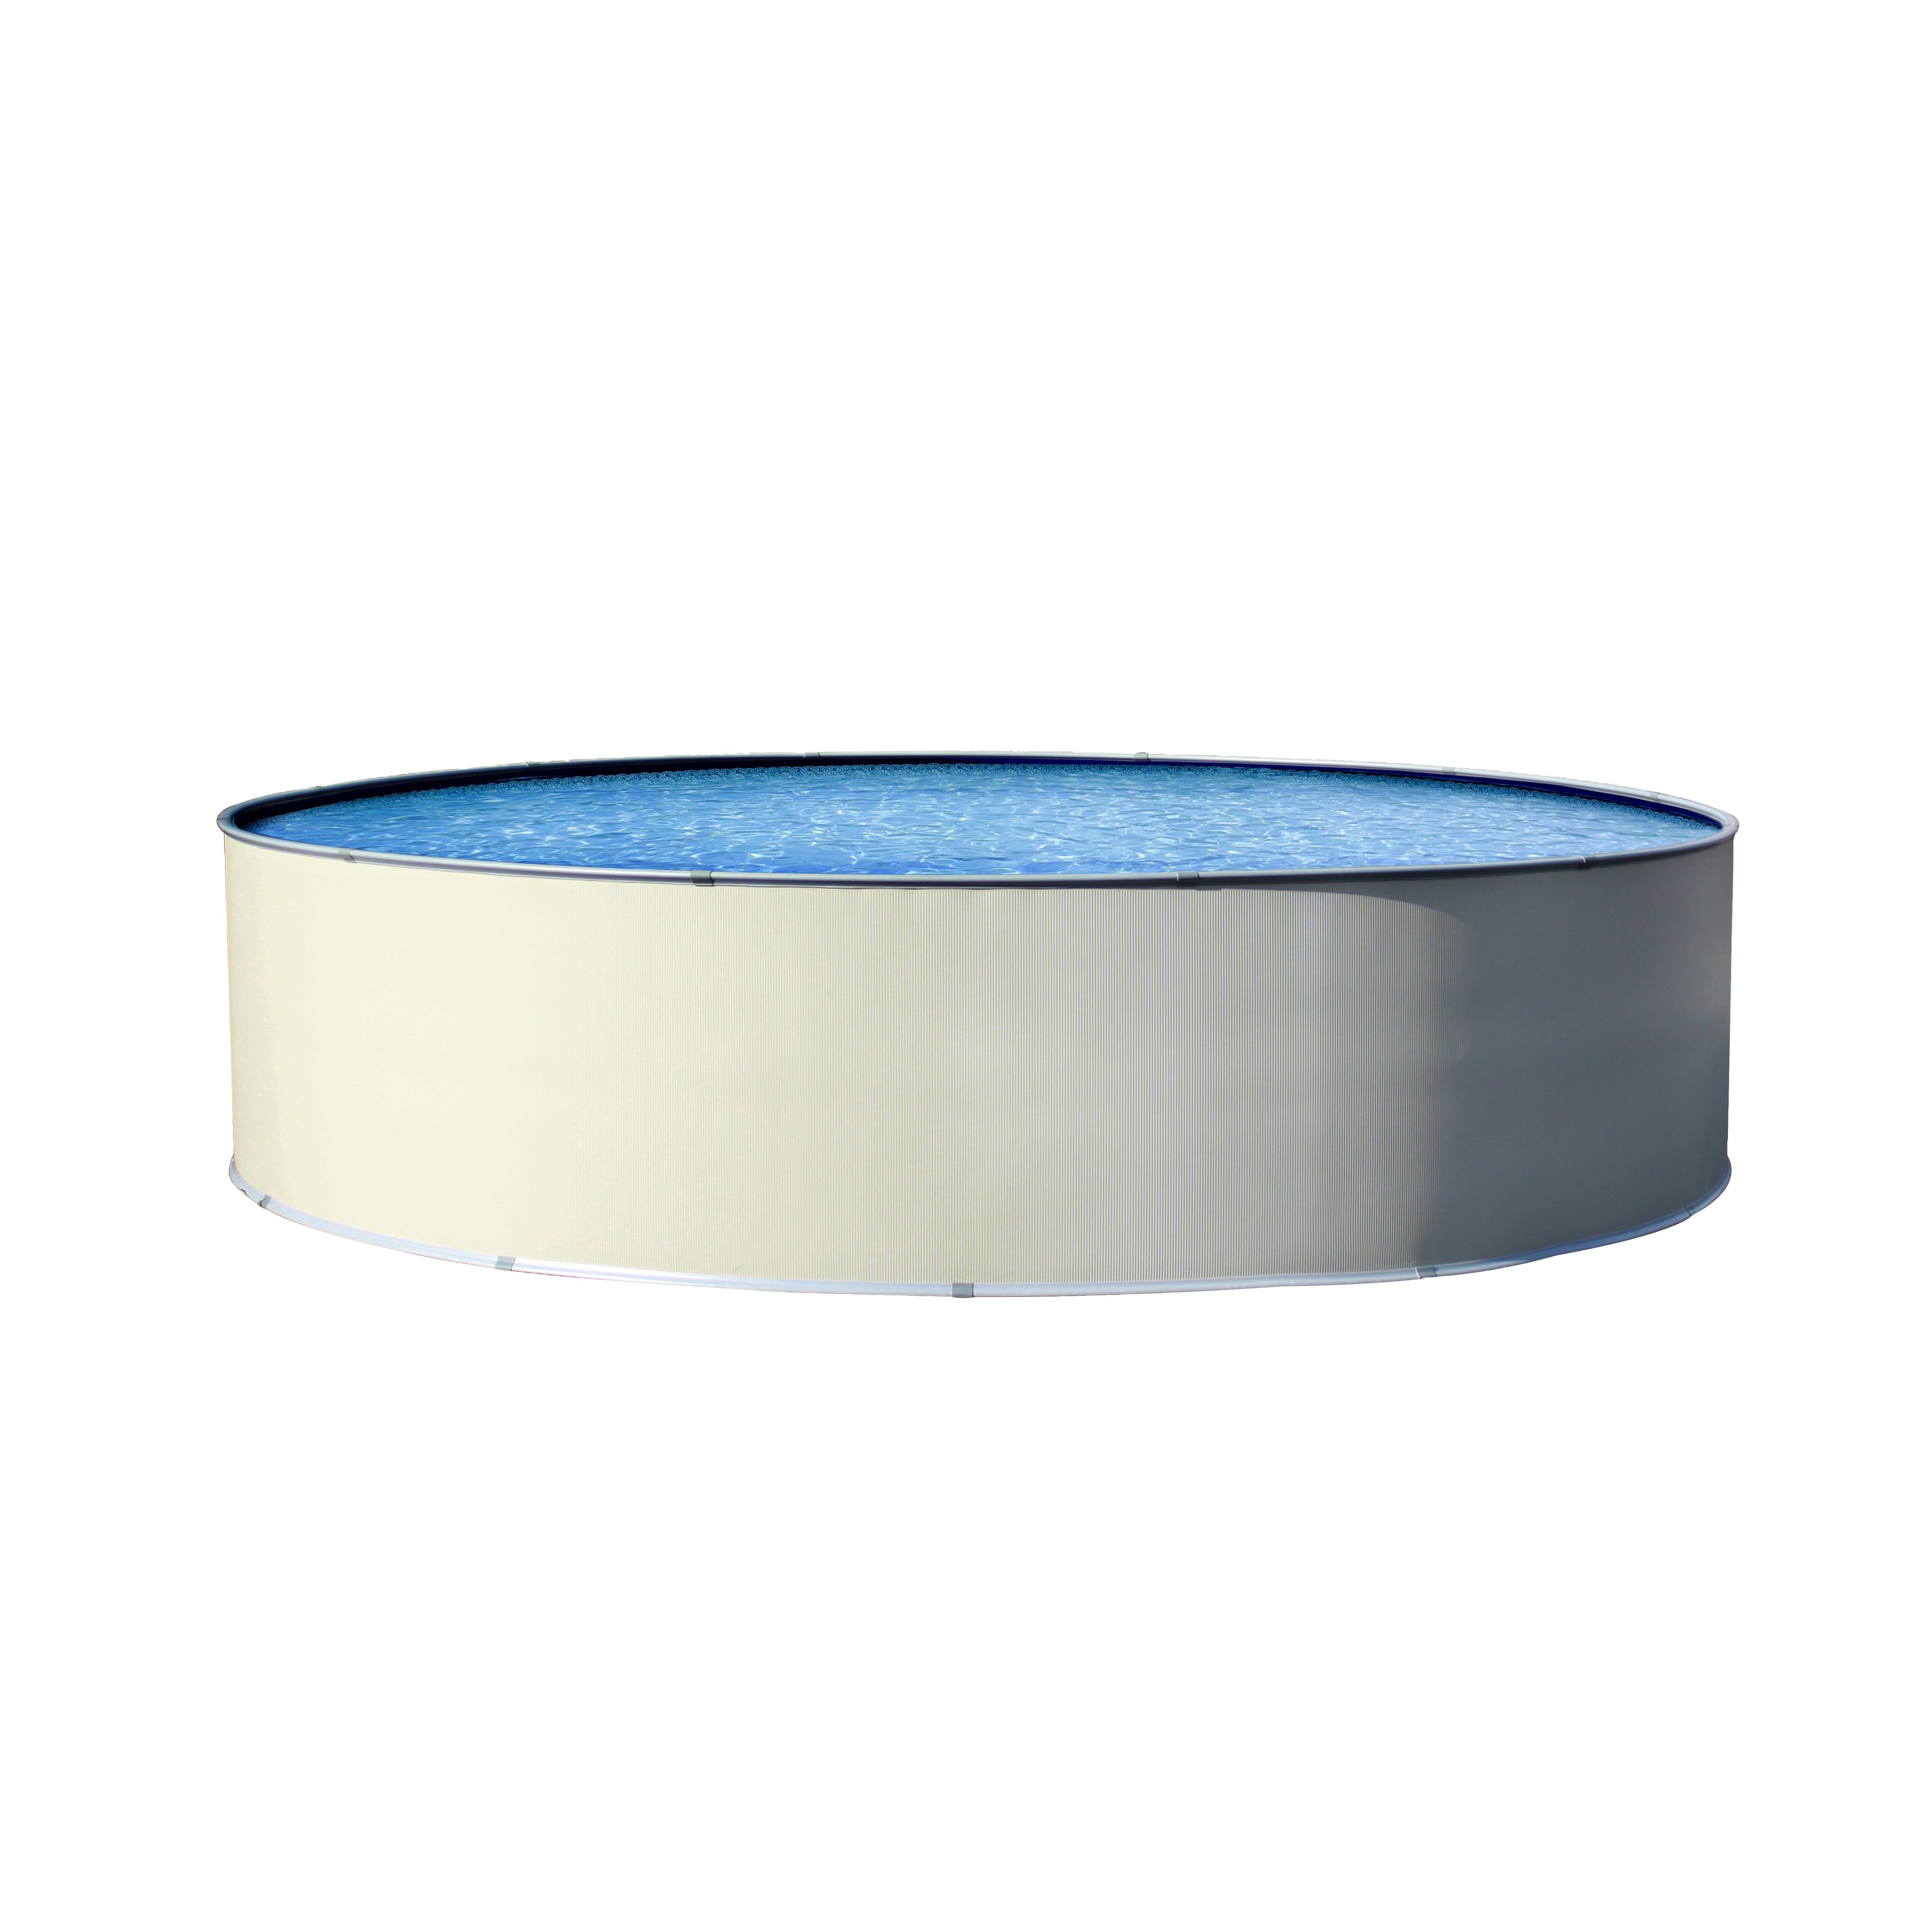 Simplicity 15 round above ground pool pool supplies canada for Pool accessories